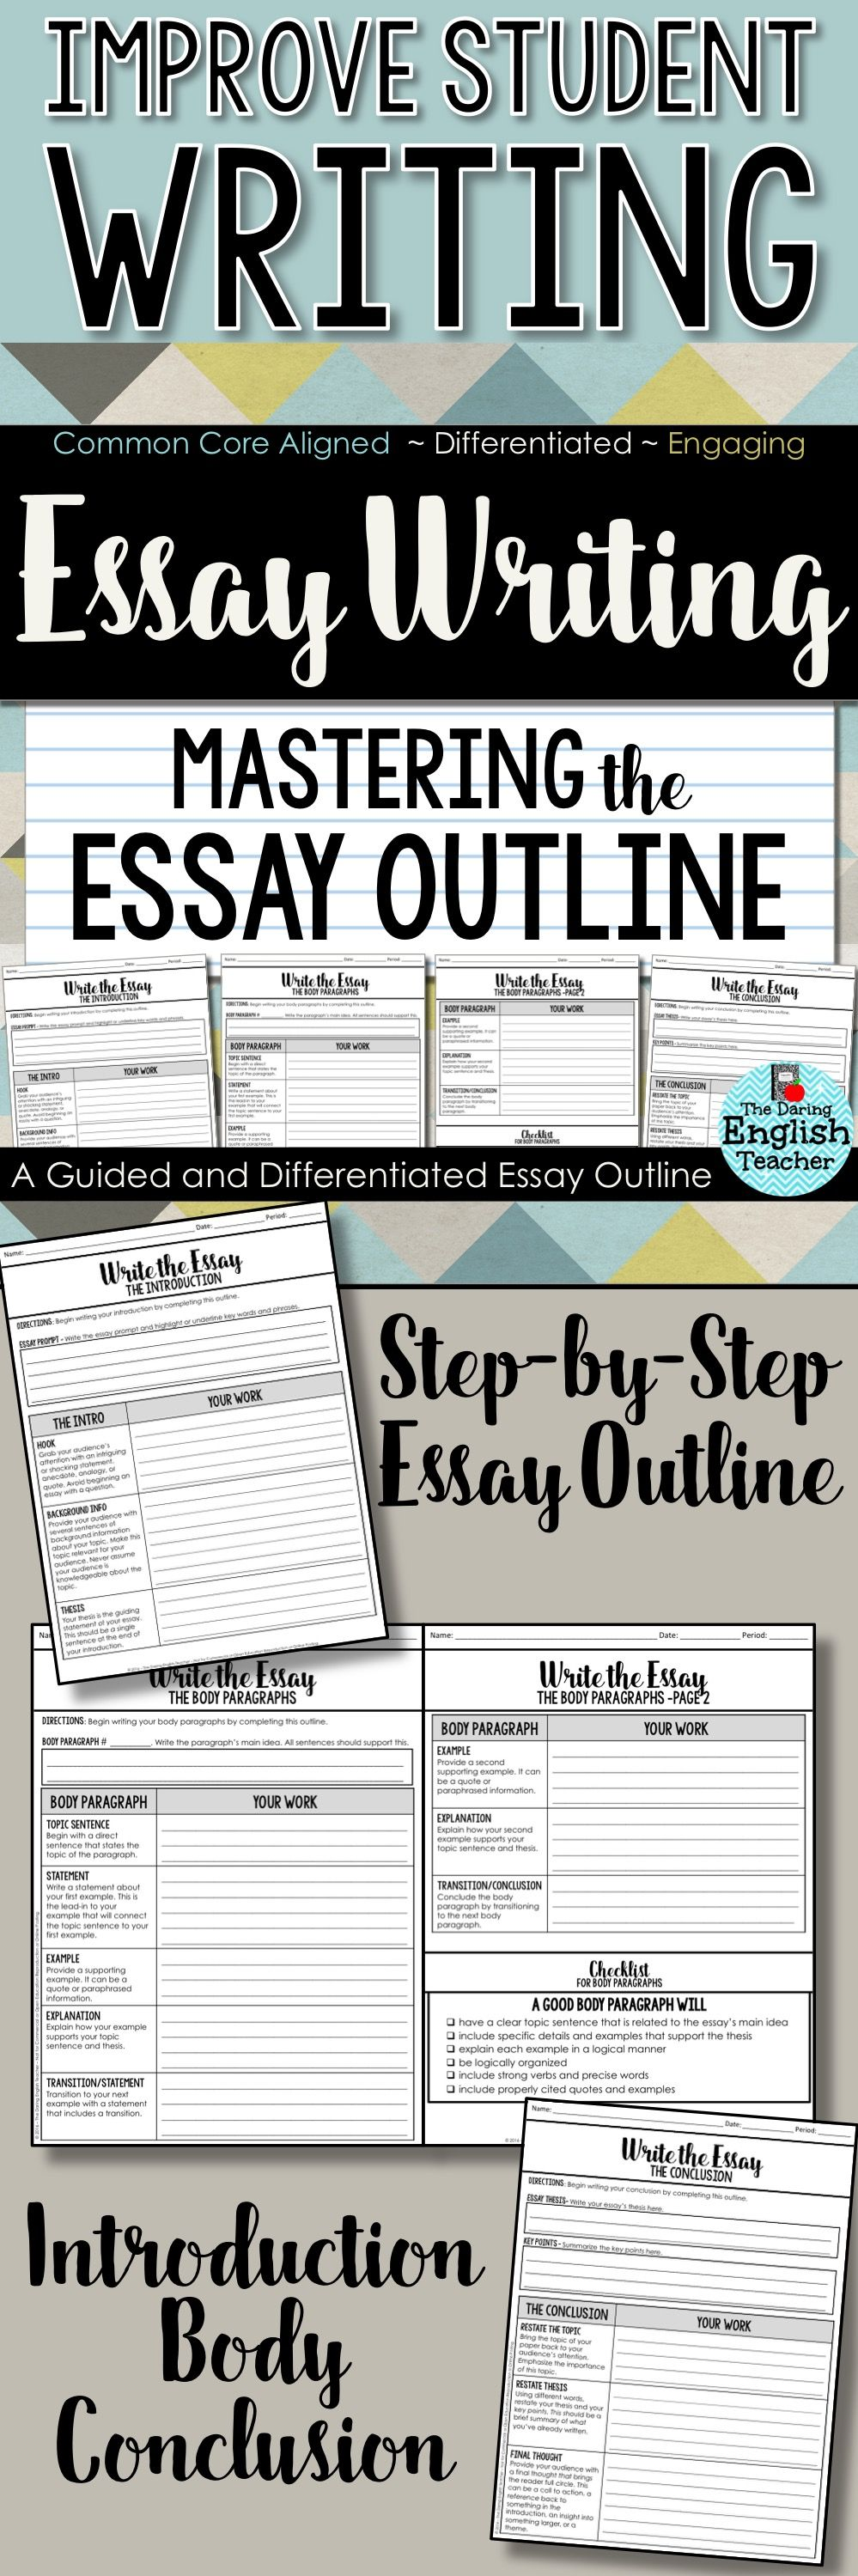 ideal husband essay essays on the help the help essays write a  essay writing mastering the essay outline guided guide students step by step through the essay writing